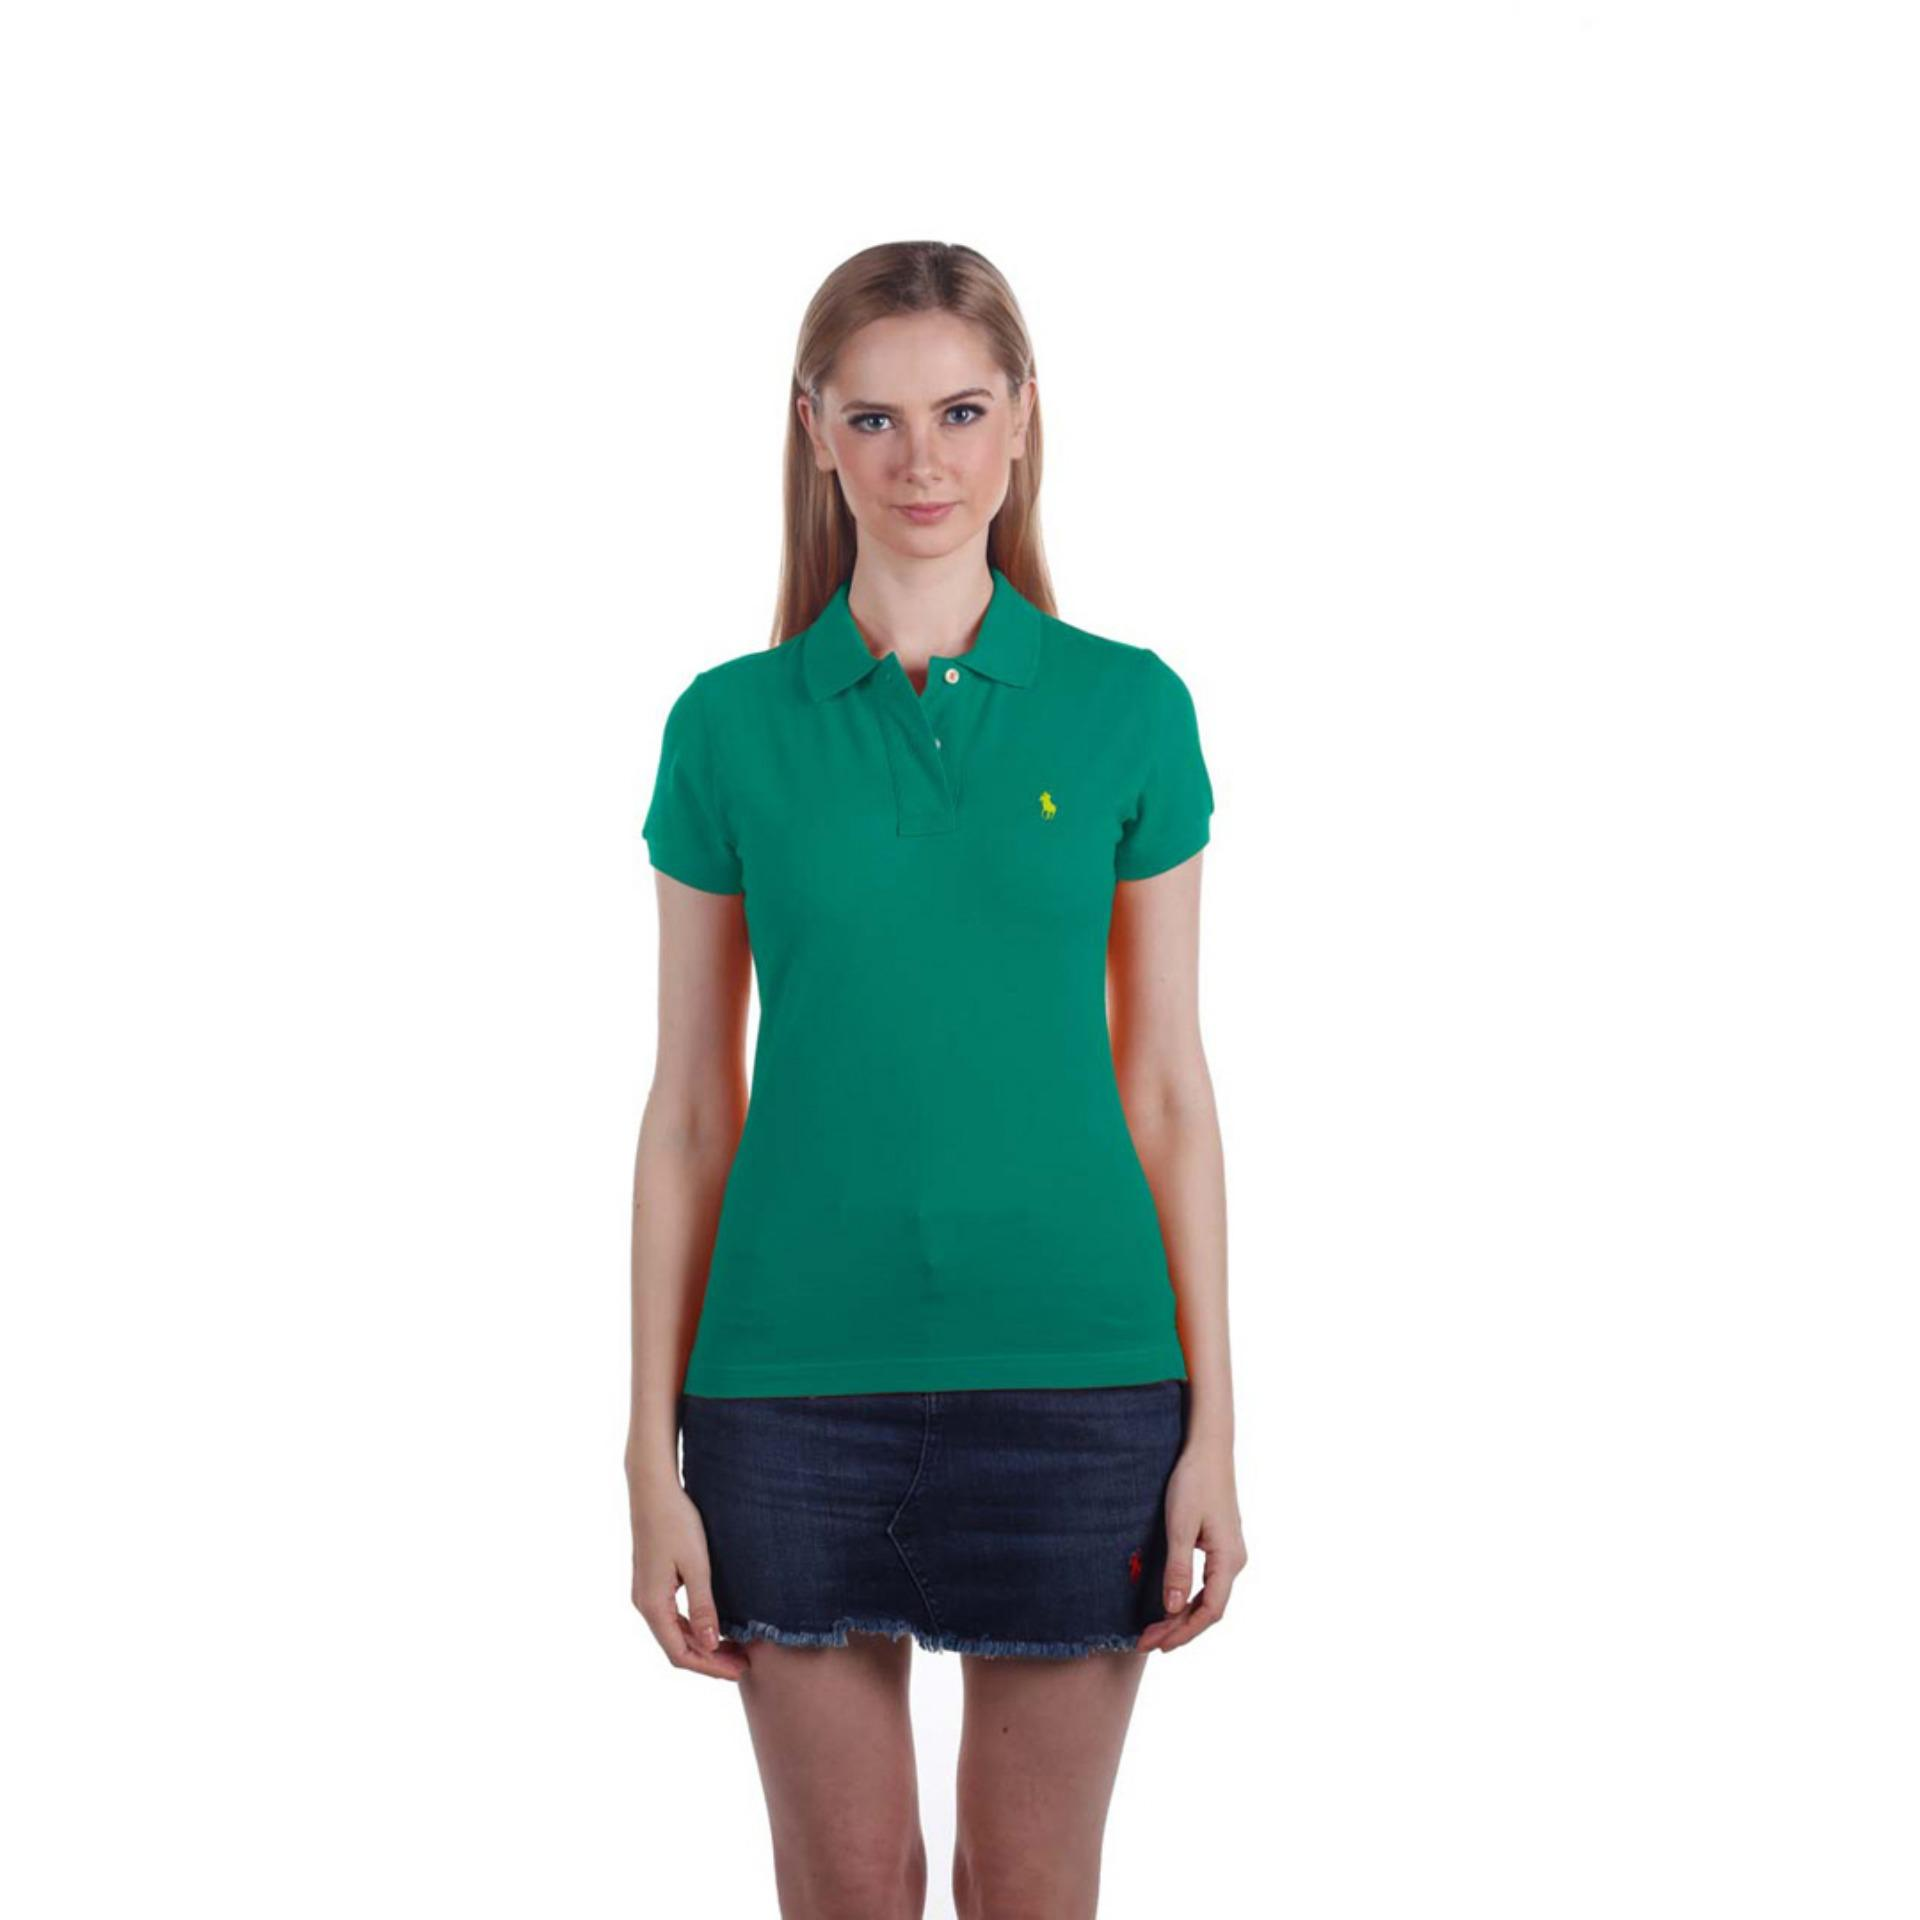 POLO RALPH LAUREN - POLO SHIRT CLASSIC FIT S/S EMERALD GREEN LADIES